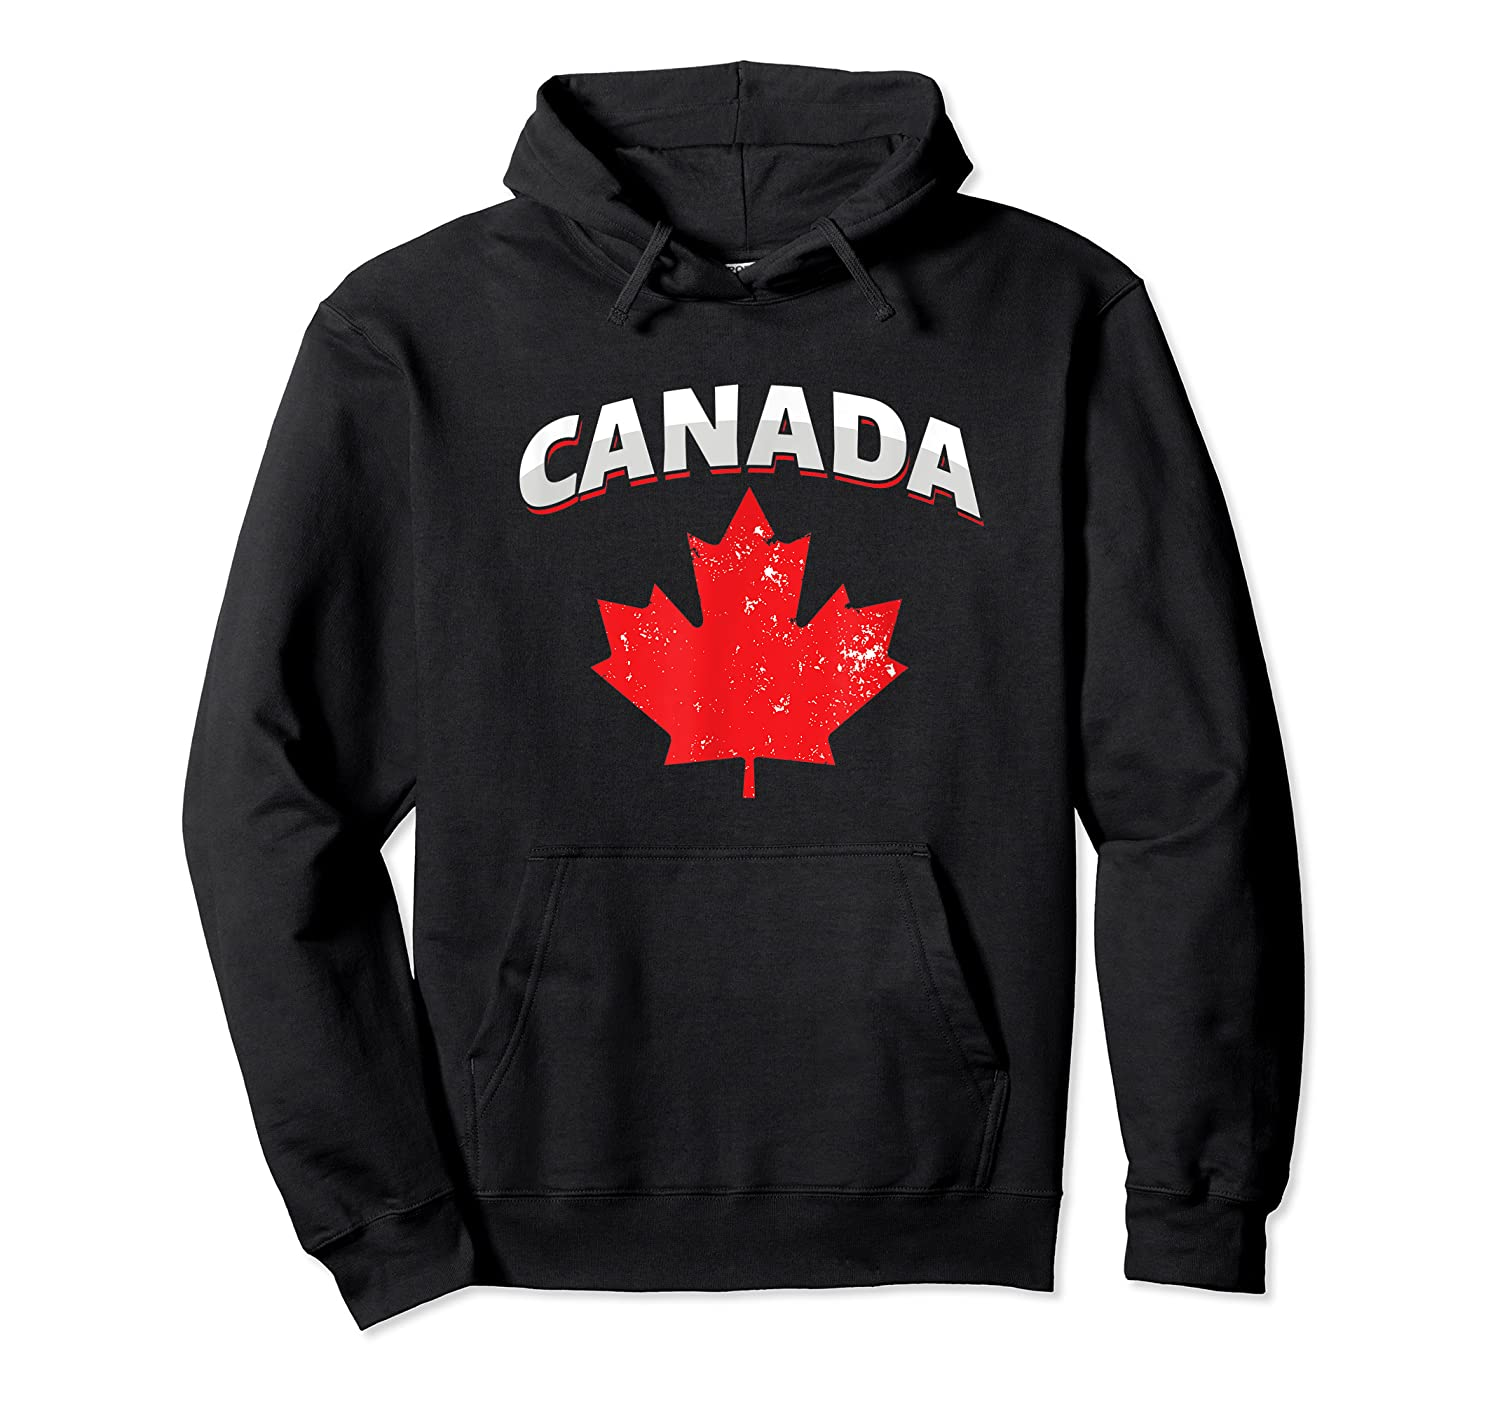 Toronto Vancouver Patriotic Canadian Canada Maple Leaf Shirts Unisex Pullover Hoodie